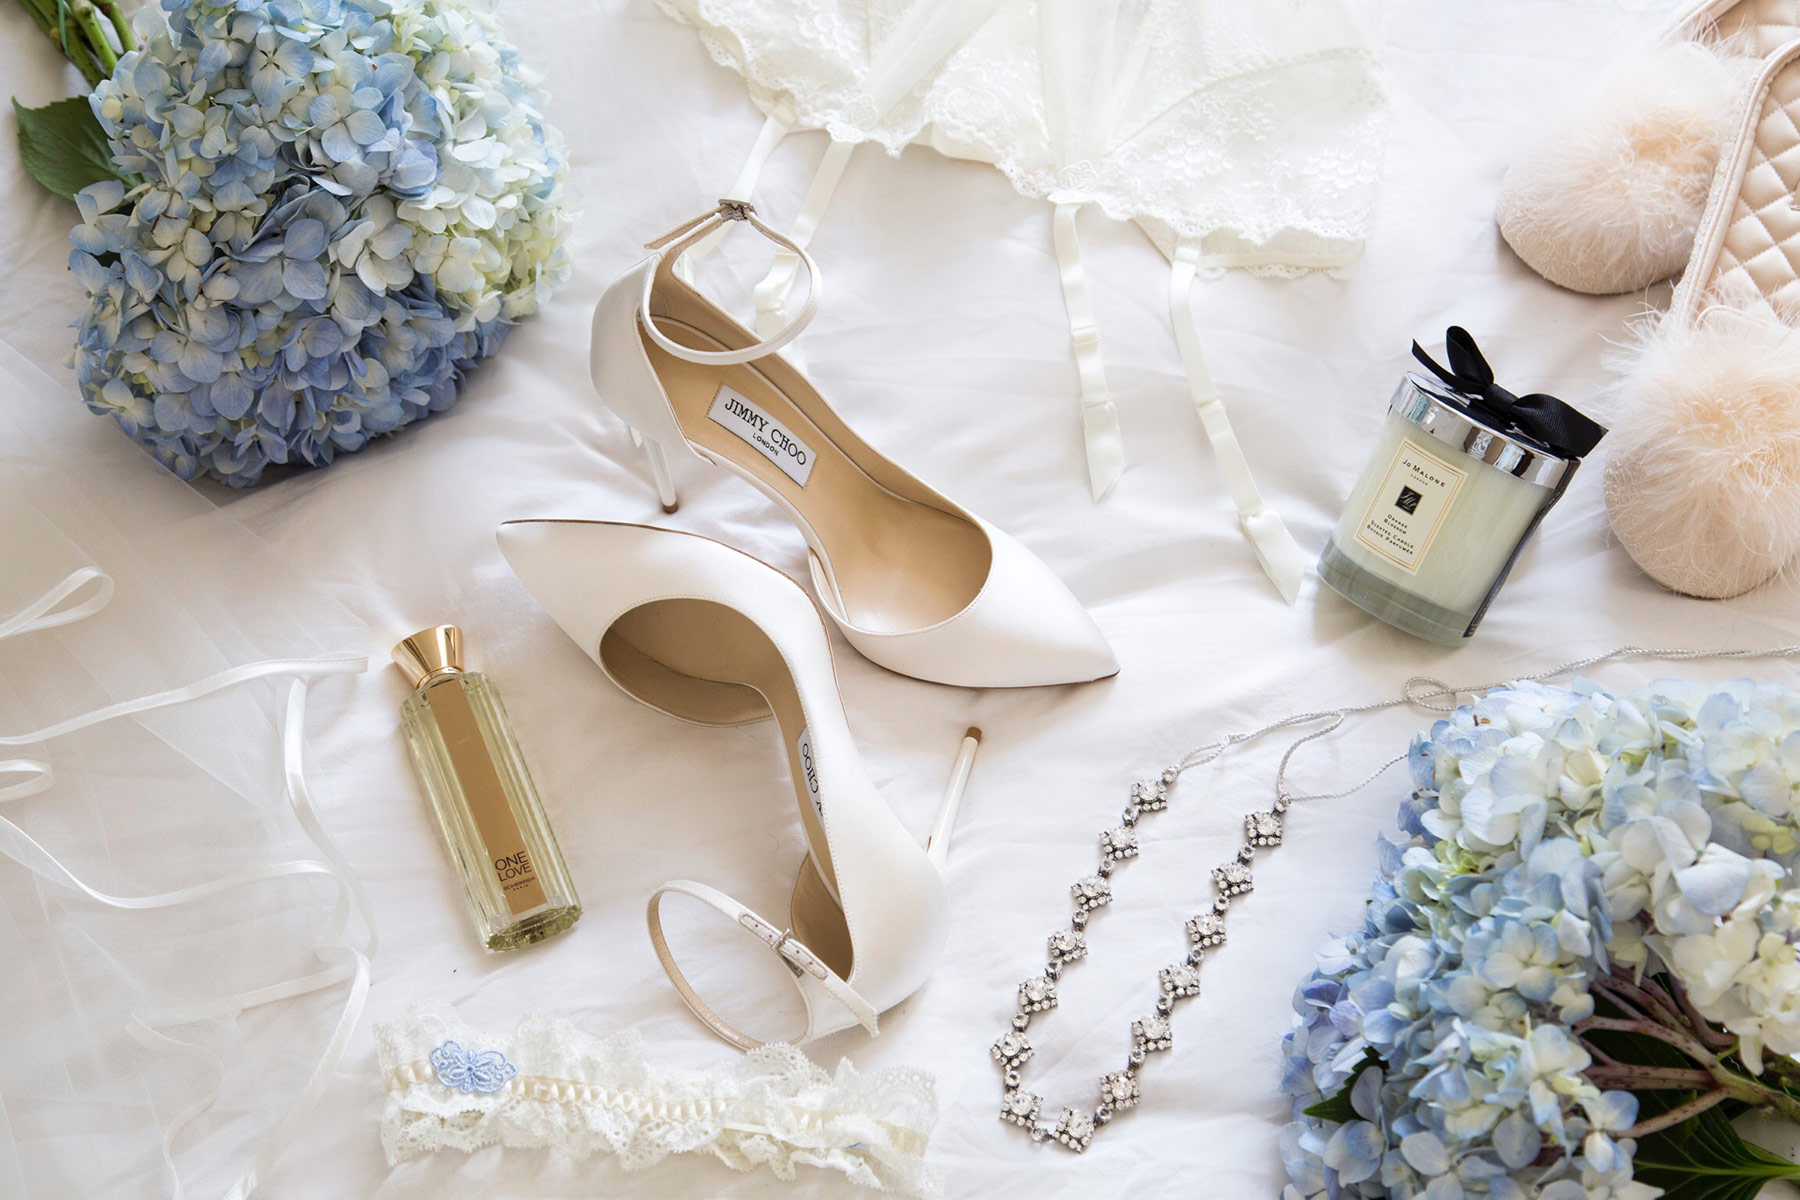 Bridal Essentials - Now that you found your bridal gown, the next step is choosing the finishing touches. Read on for my bridal essentials checklist and advice on picking the perfect accessories.